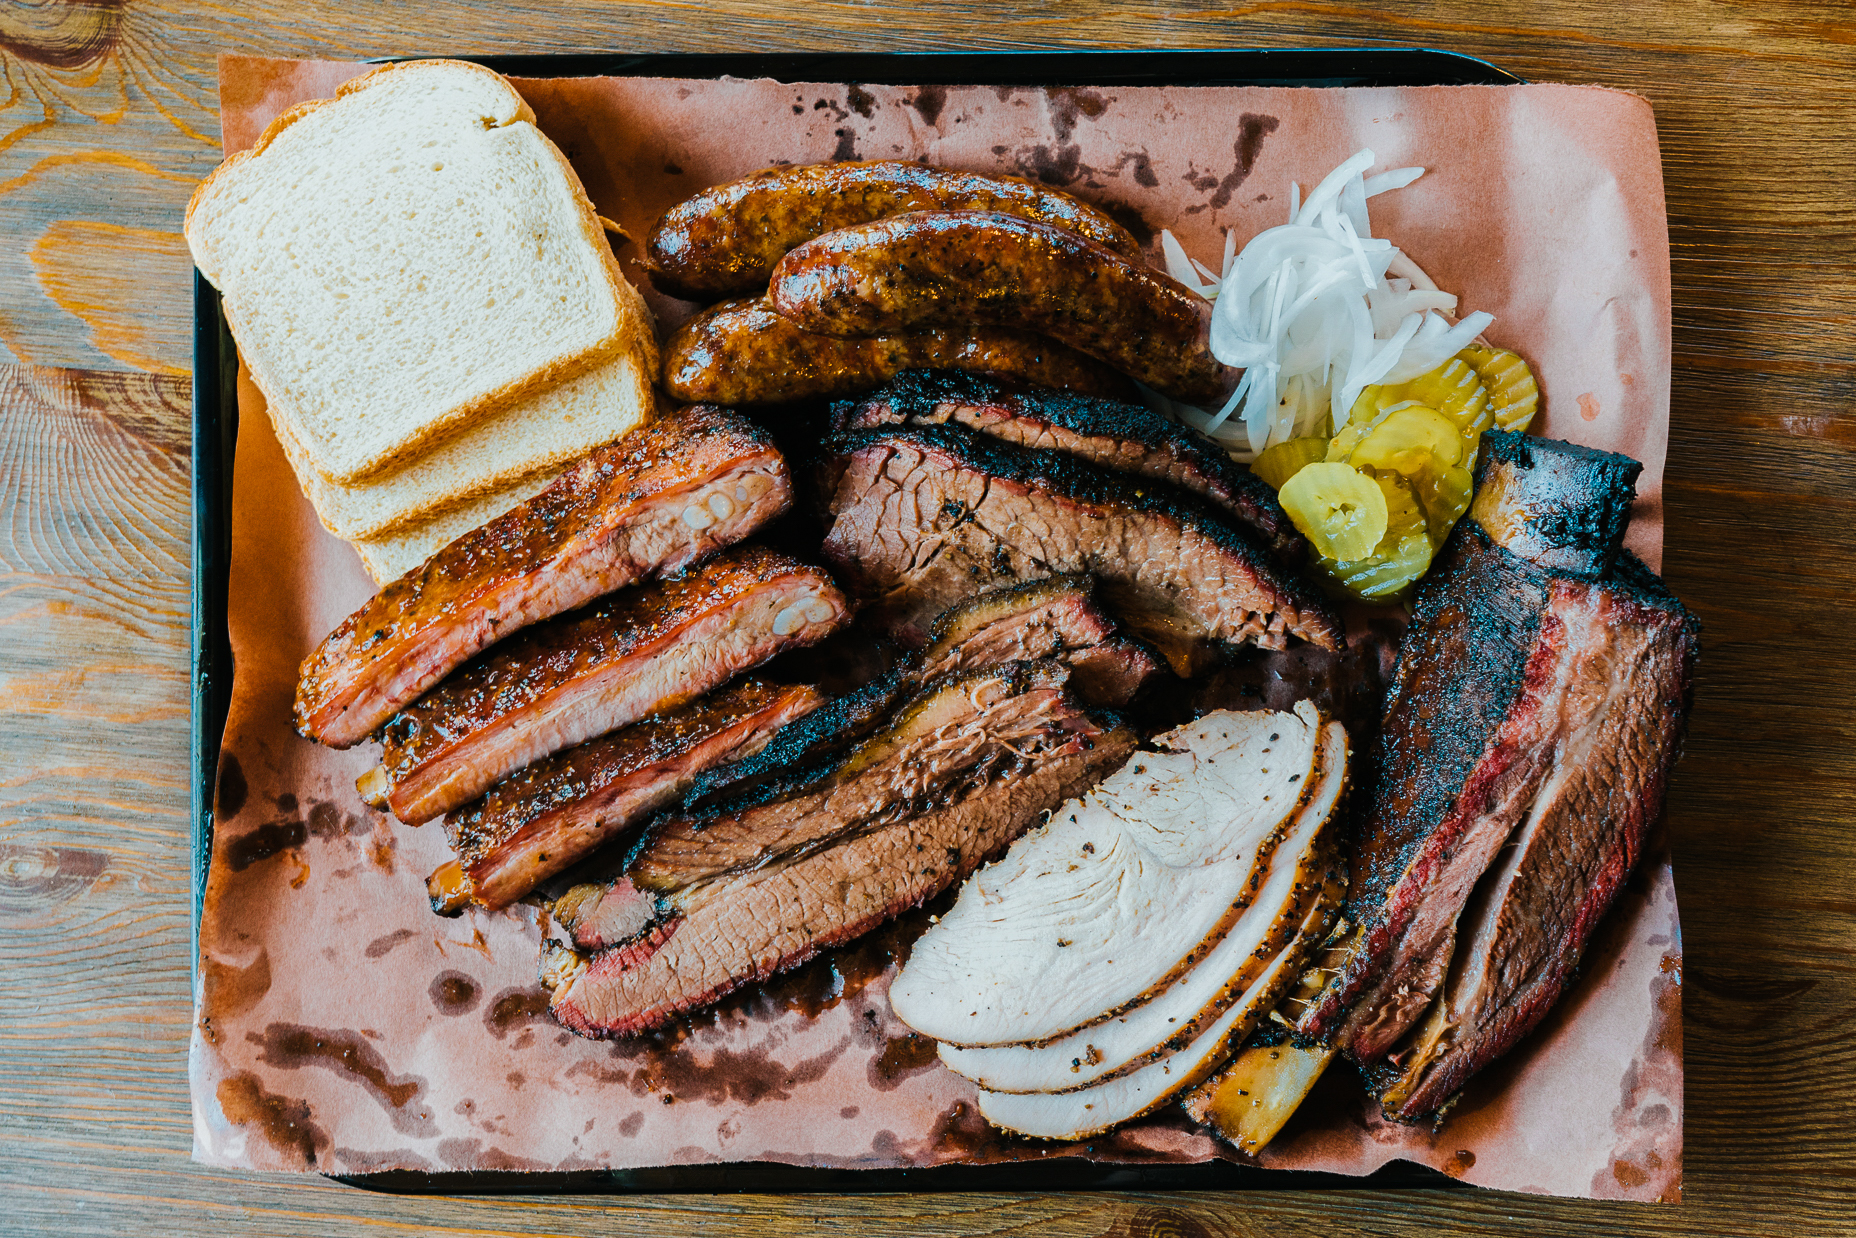 A tray of brisket, sausages, turkey, and bread and pickles